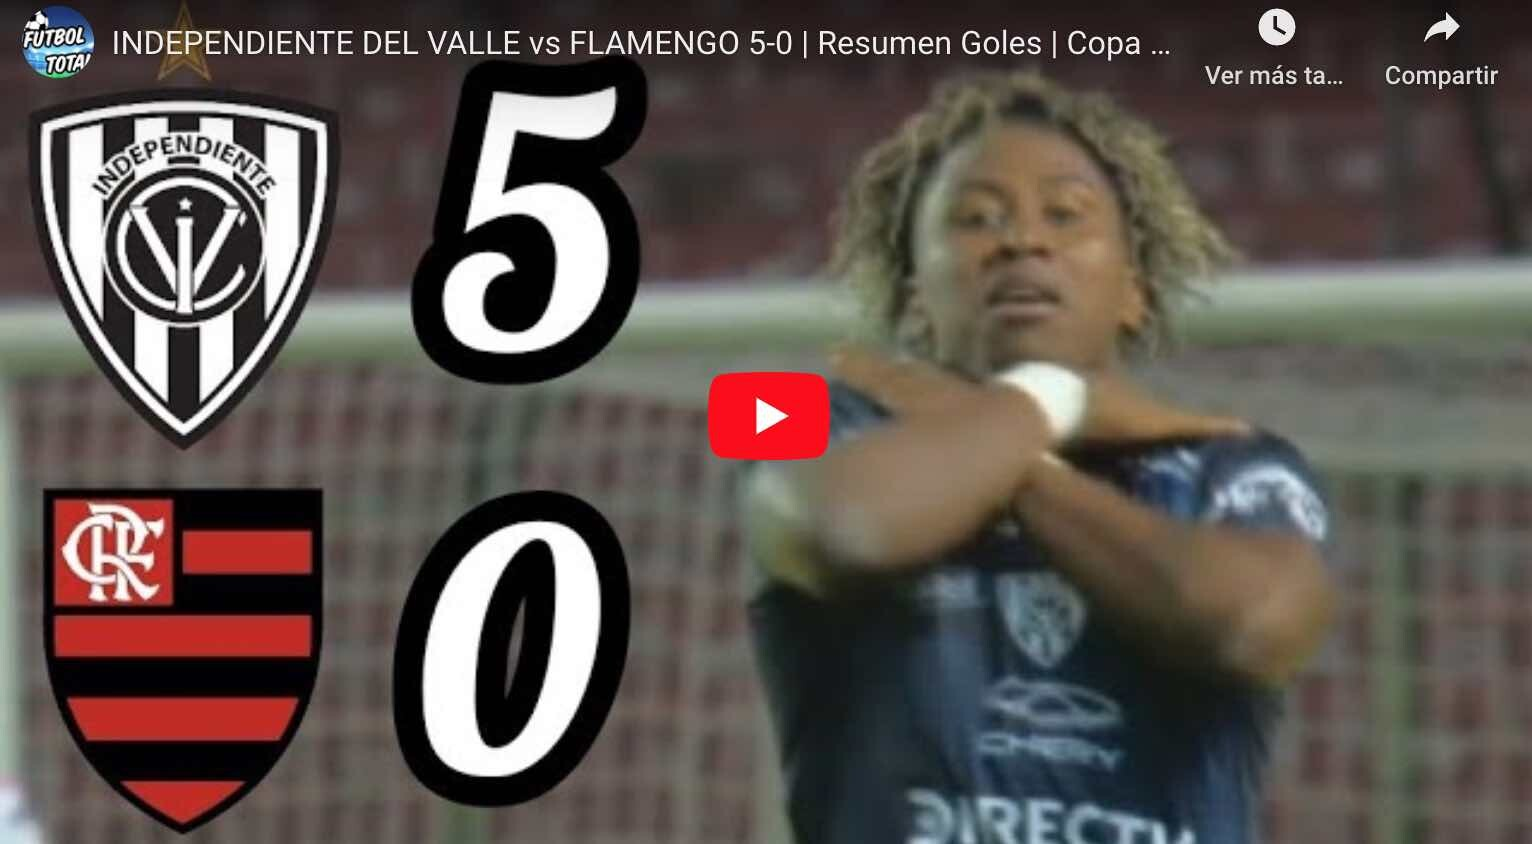 VIDEO: GOLES INDEPENDIENTE DEL VALLE vs FLAMENGO 5-0